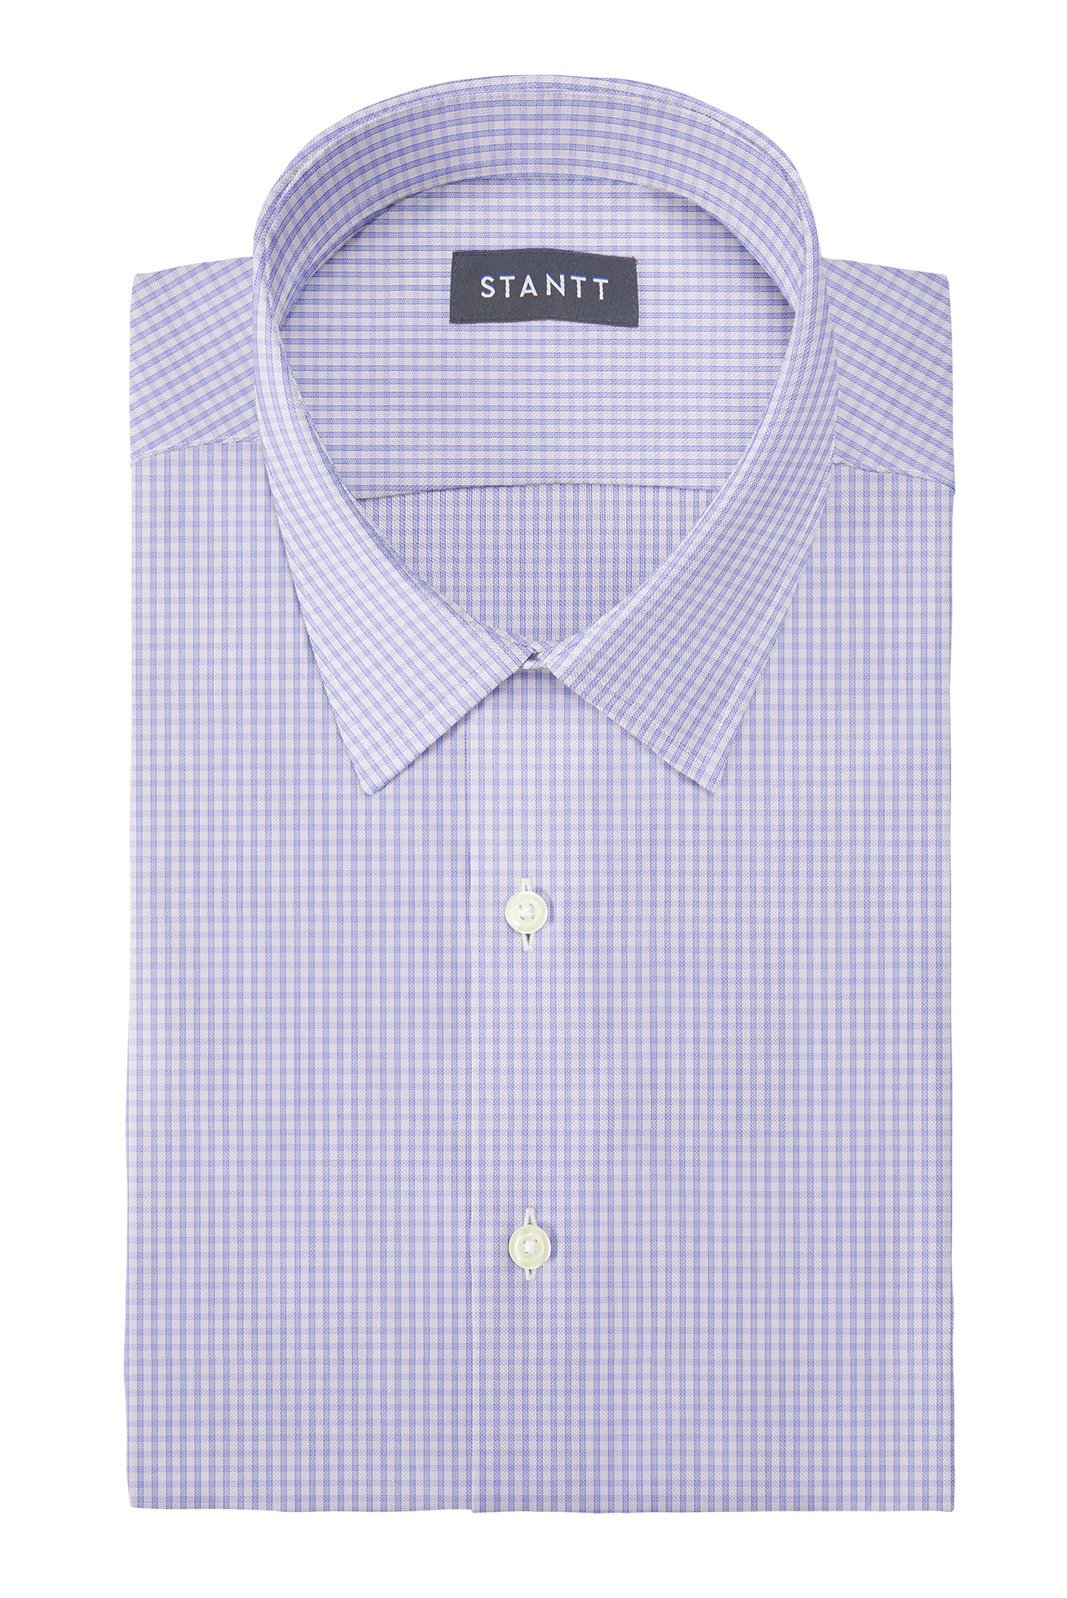 Wrinkle-Resistant Sky Blue Grid Check: Semi-Spread Collar, Barrel Cuff